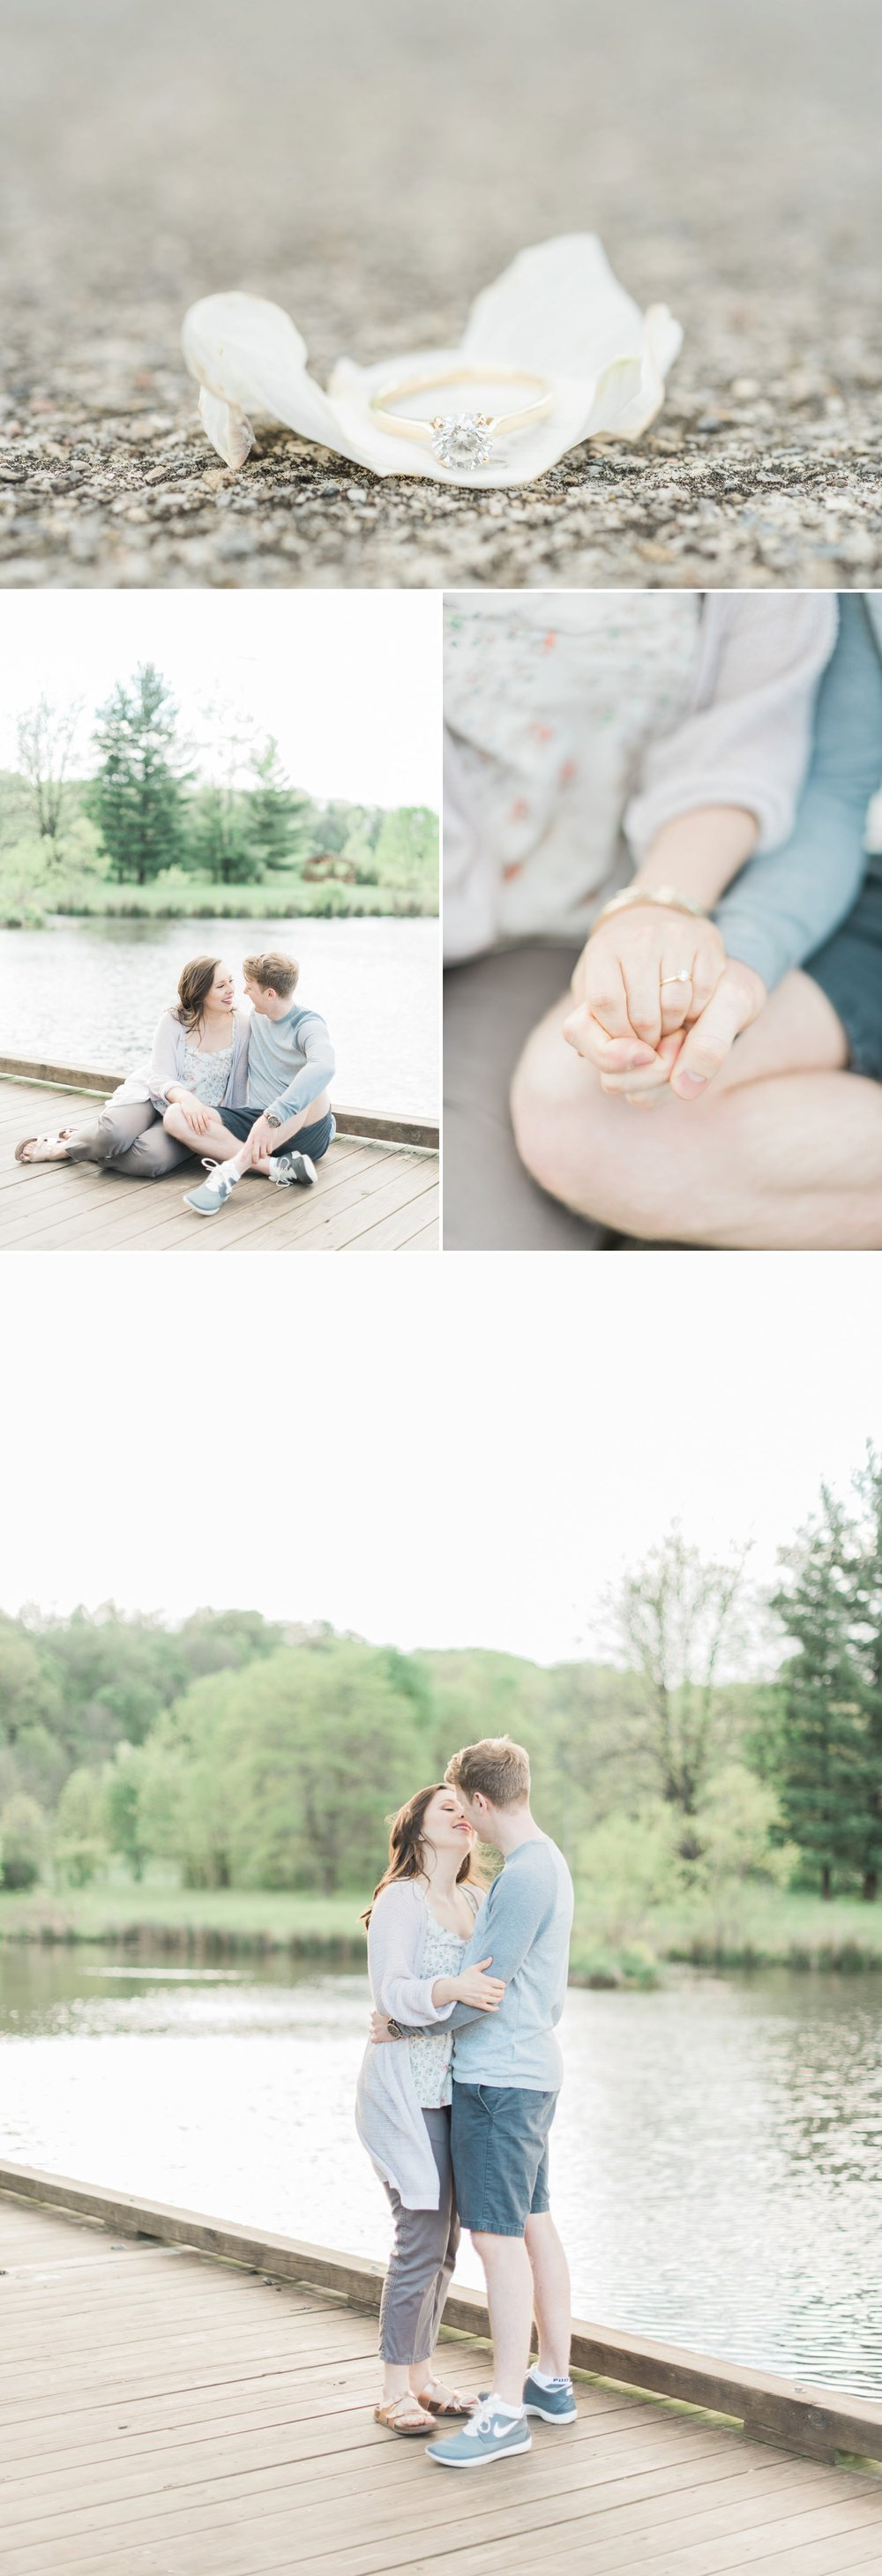 chestnut-ridge-metro-park-engagement-carroll-ohio-29.jpg